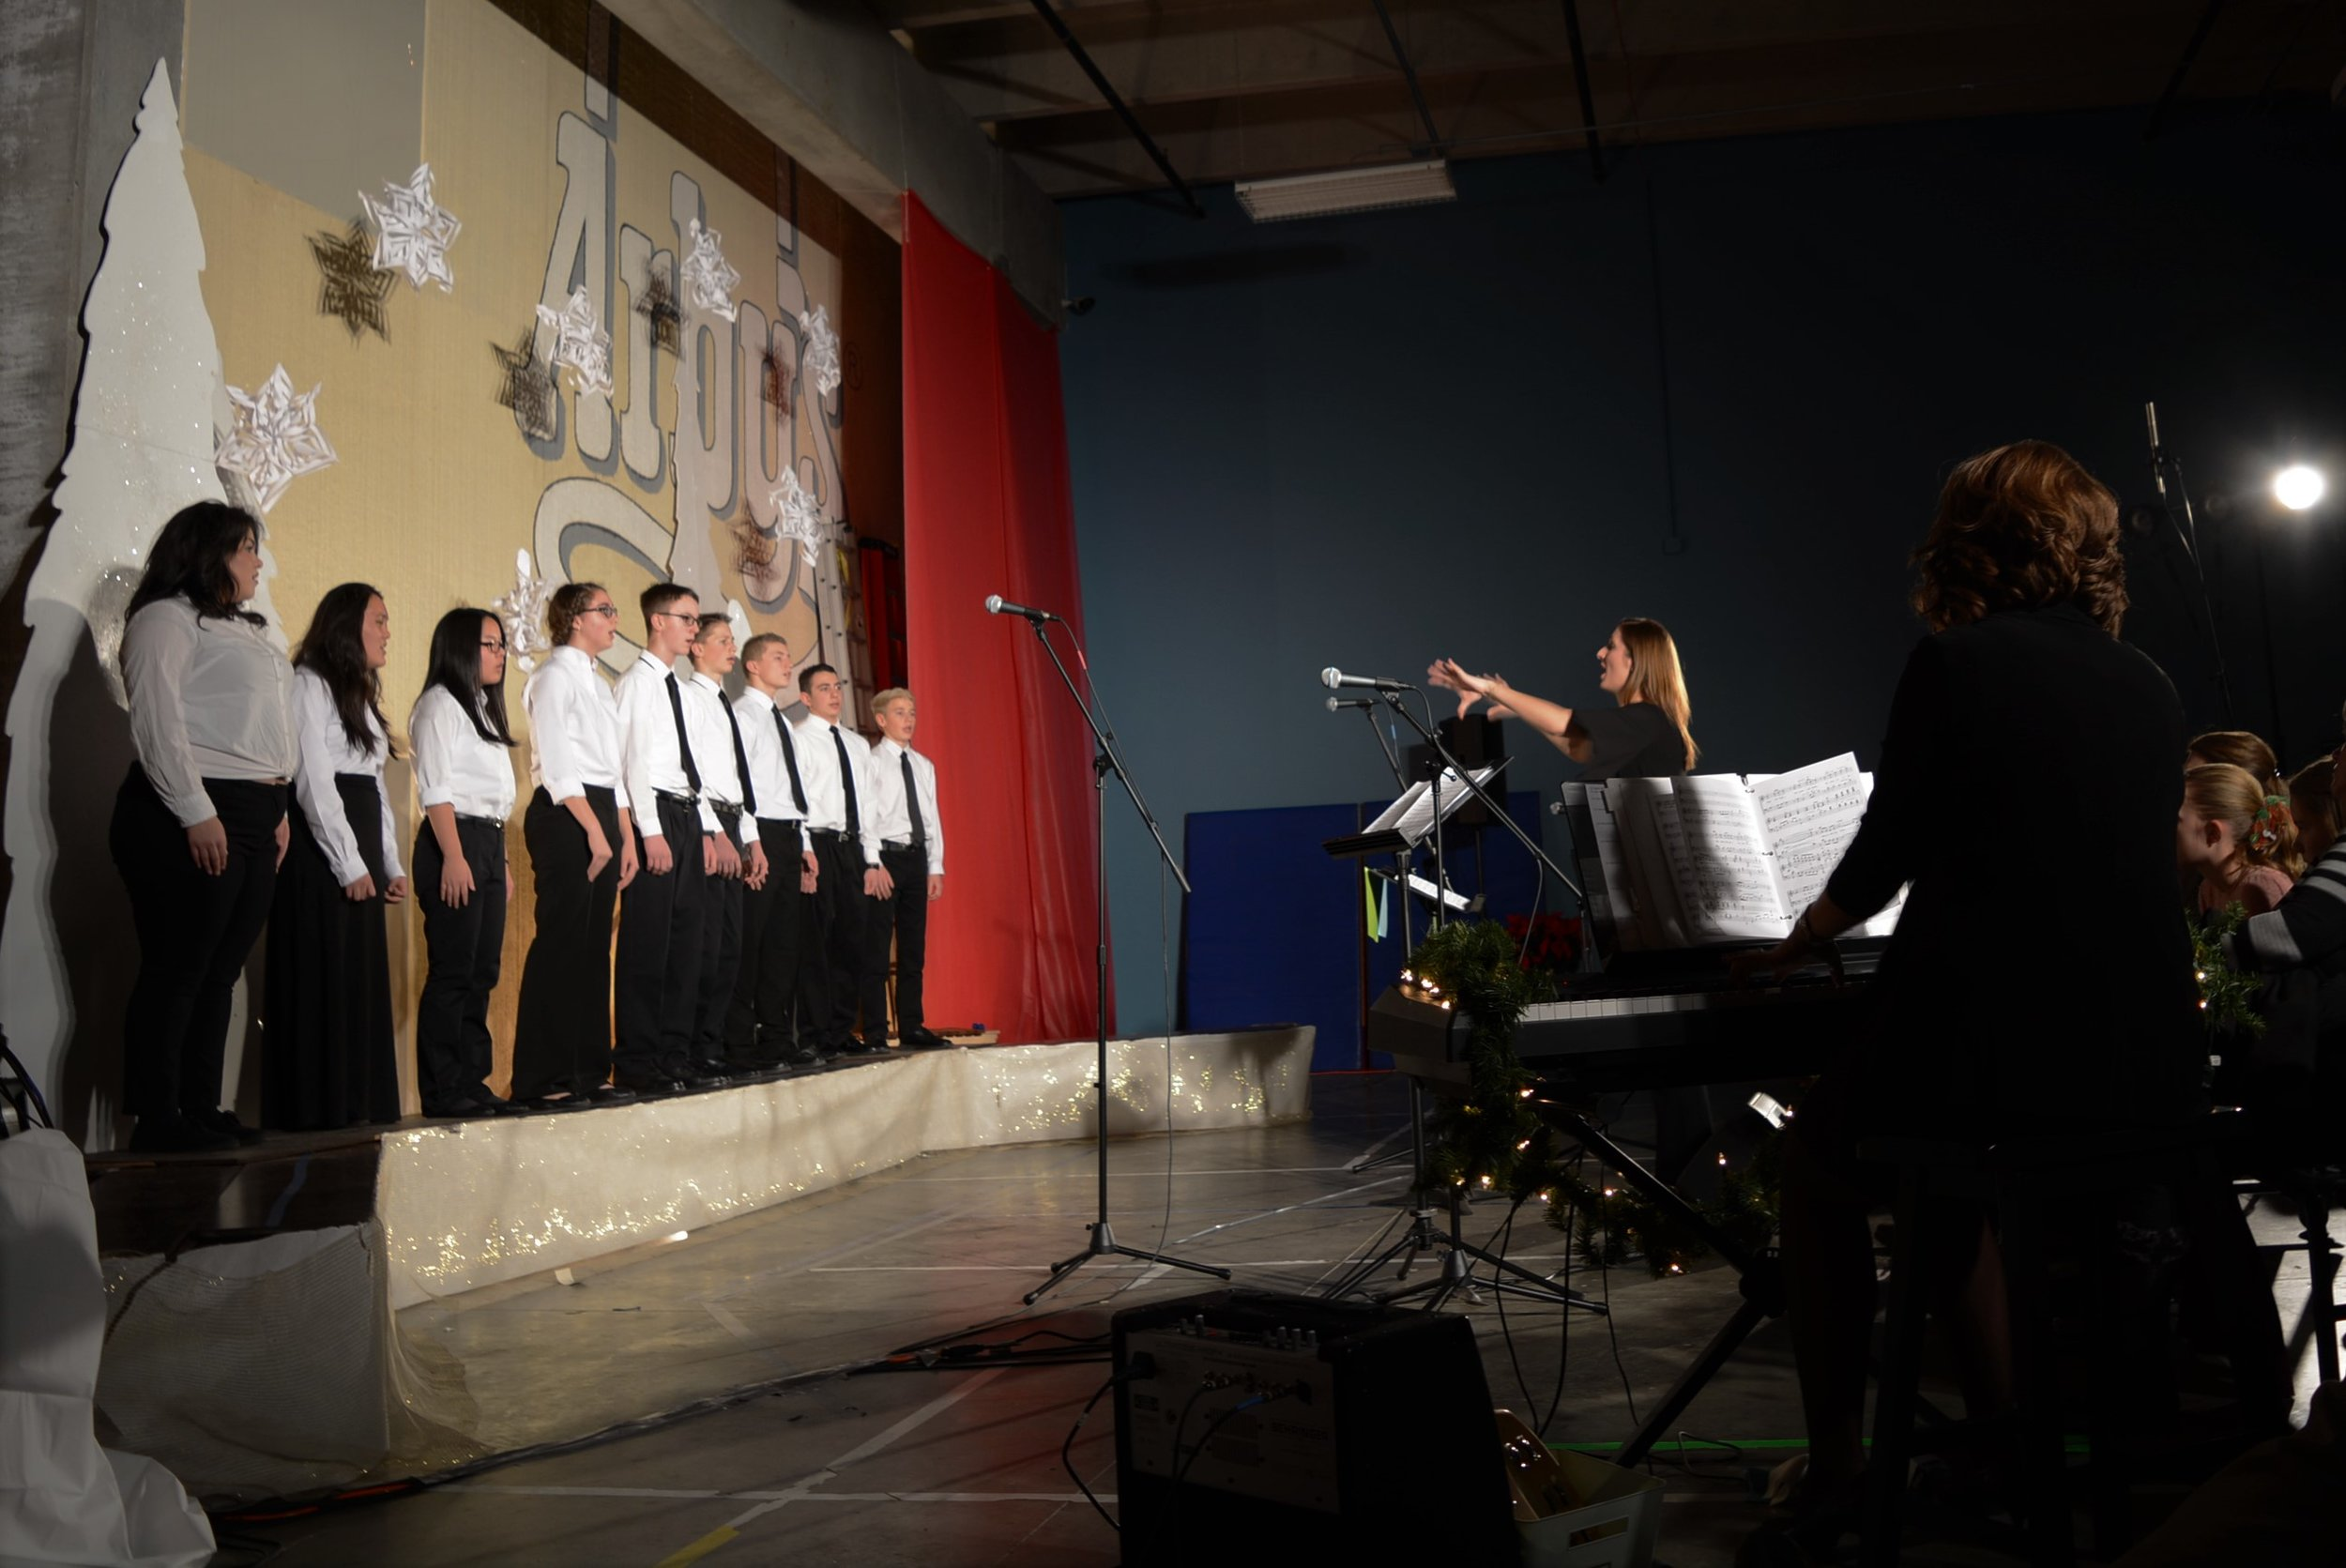 """Our Upper School Choir performed """"A Wish for Hanukkah"""" by L. Brownsey and M.L. Lantz """"Mary, Did You Know?"""" by M. Lowry & B. Greene arr. by J. Schrader """"Fa, La, La, La, La"""" Traditional Carols, arr. by P. Williams and C.Curry"""